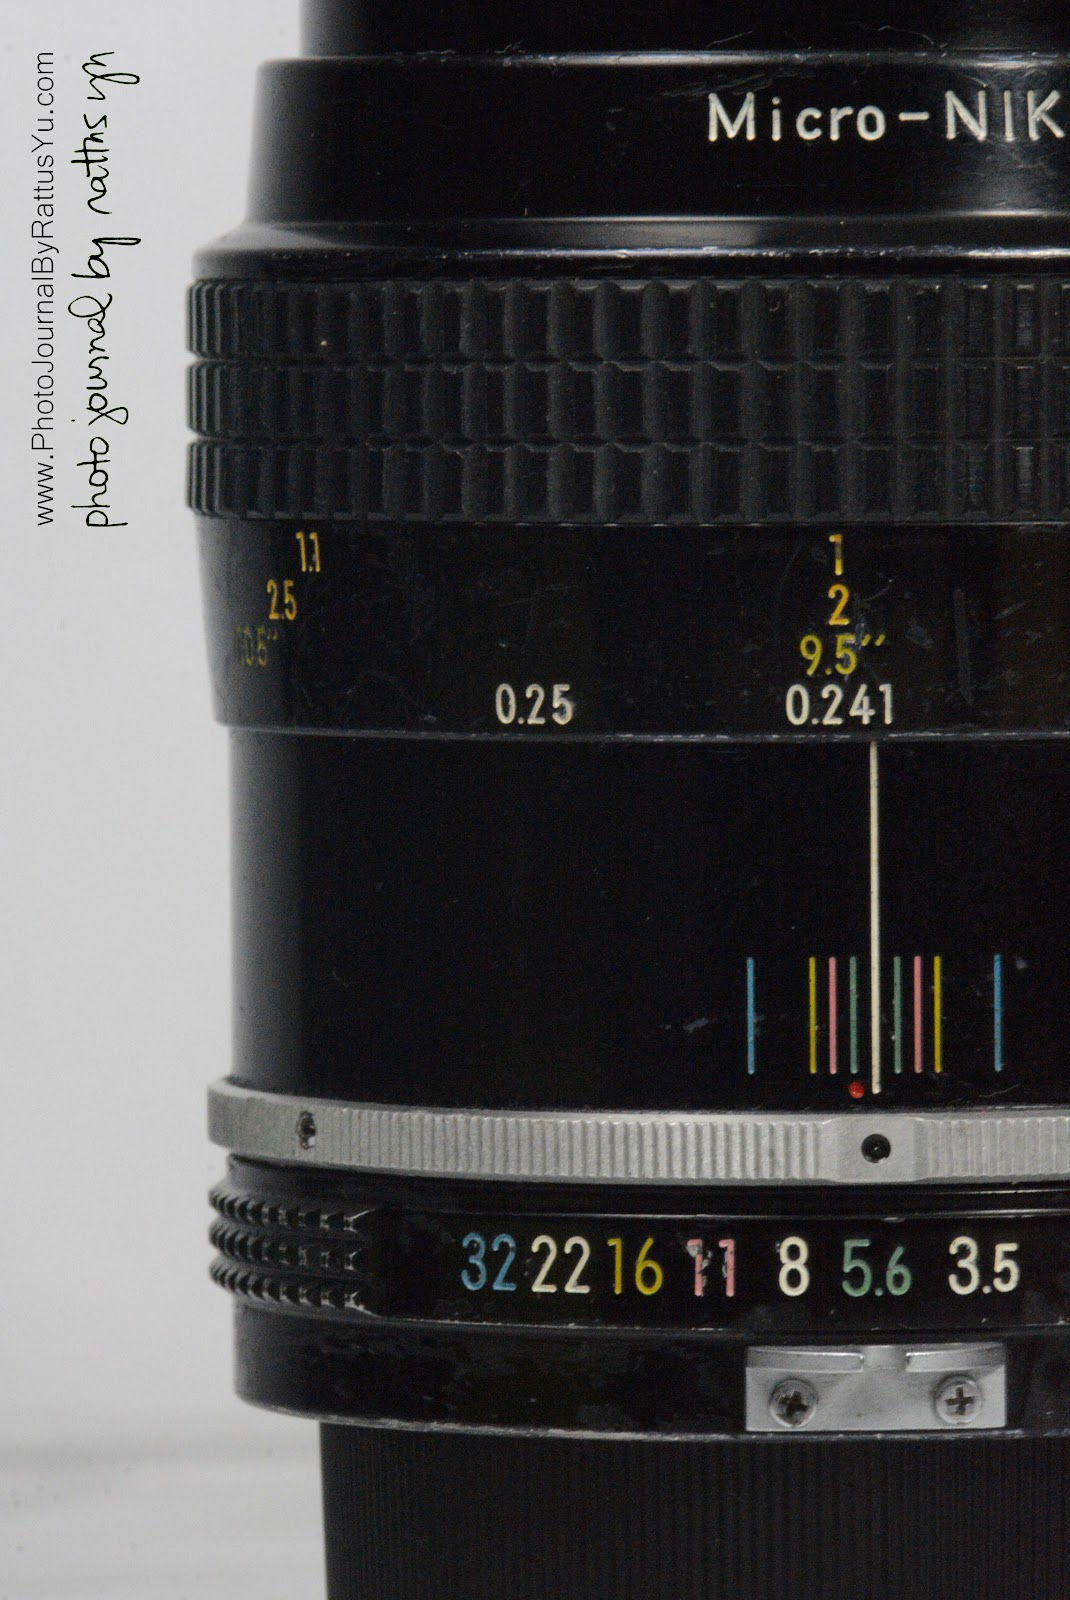 Micro-Nikkor 55mm f/3.5 (1977 Pre-AI Version)